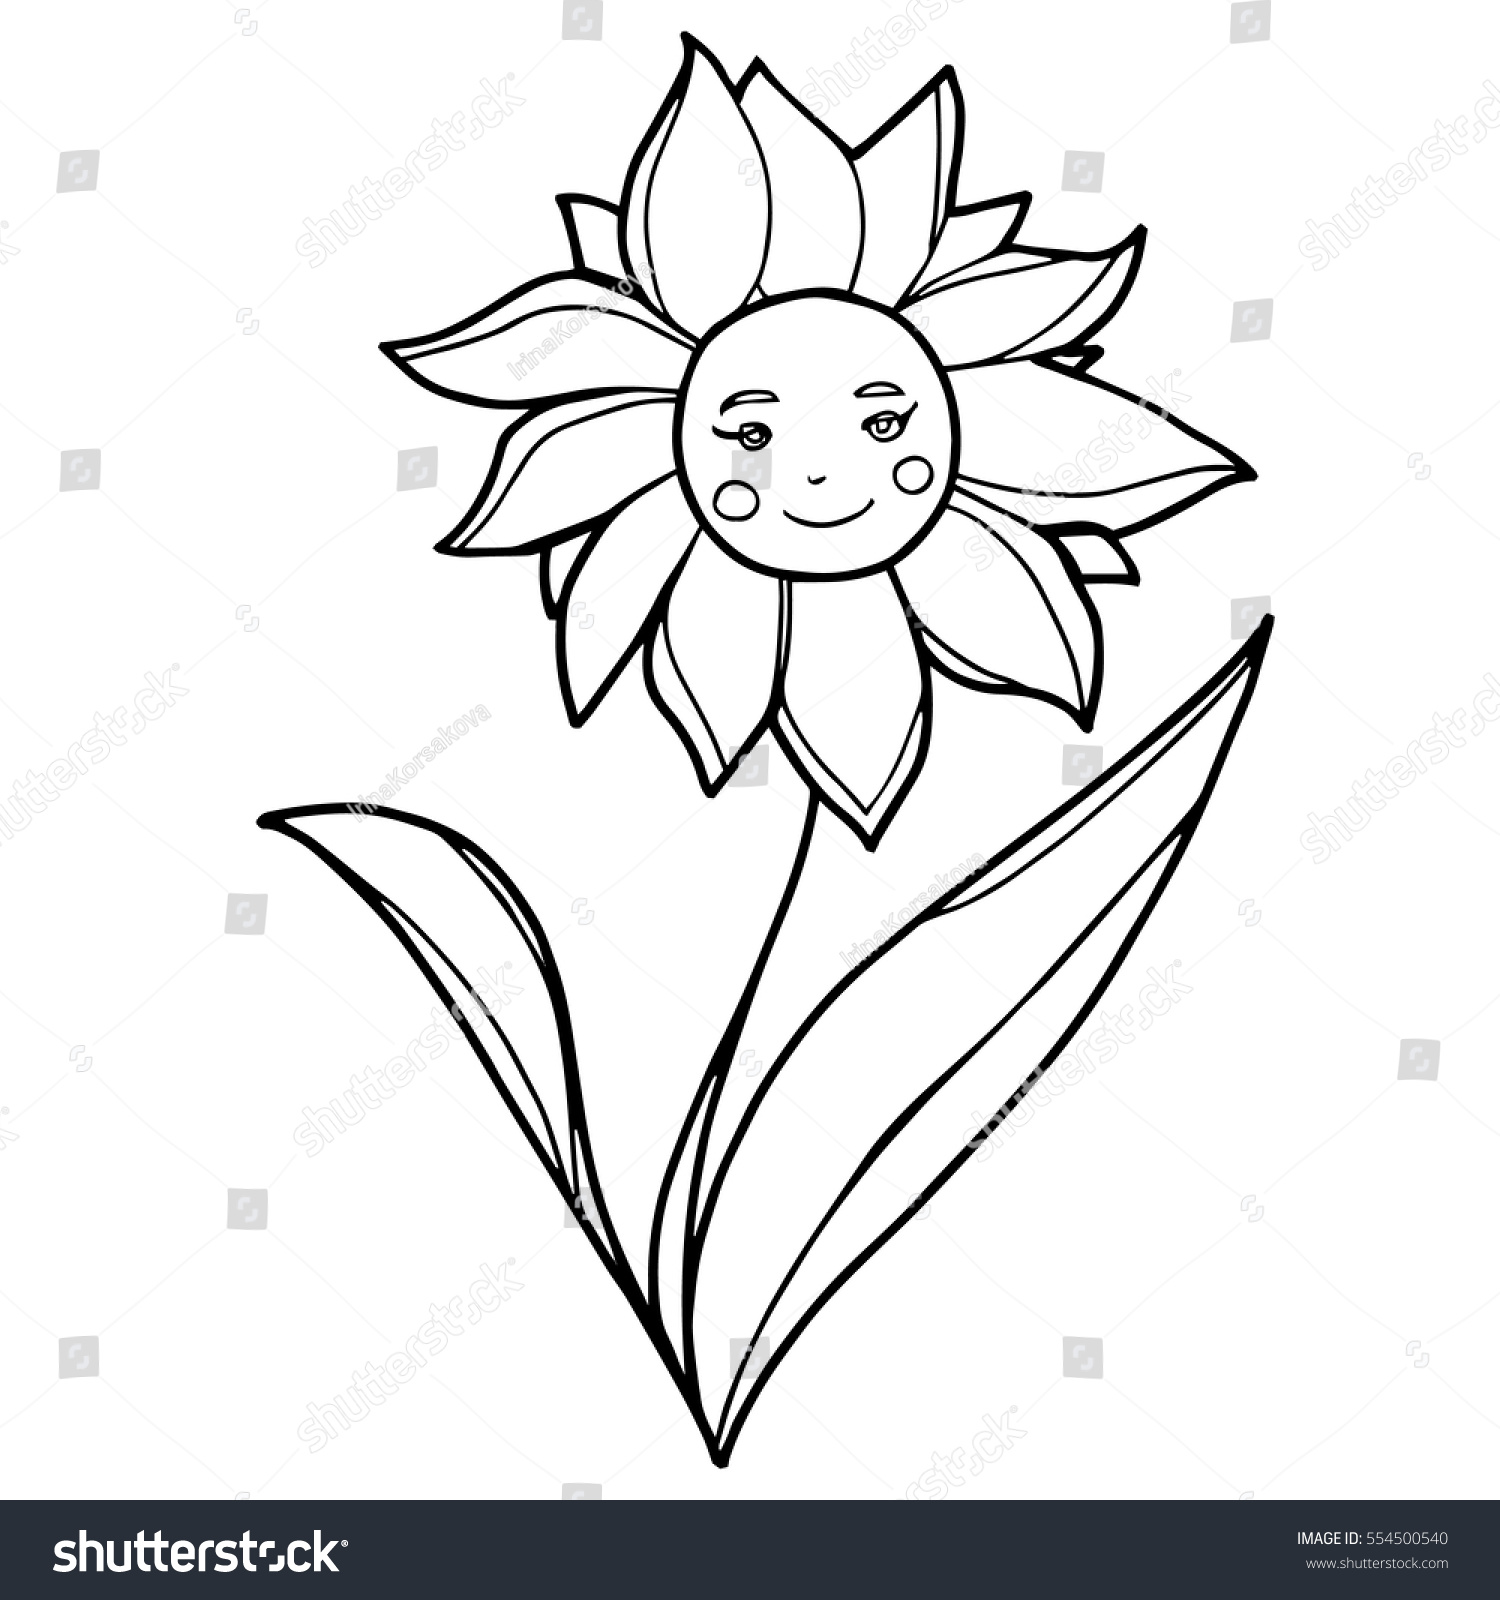 Hand drawn flower smiley face petals stock vector 554500540 hand drawn flower with smiley face petals and leaves for kids prints clothes izmirmasajfo